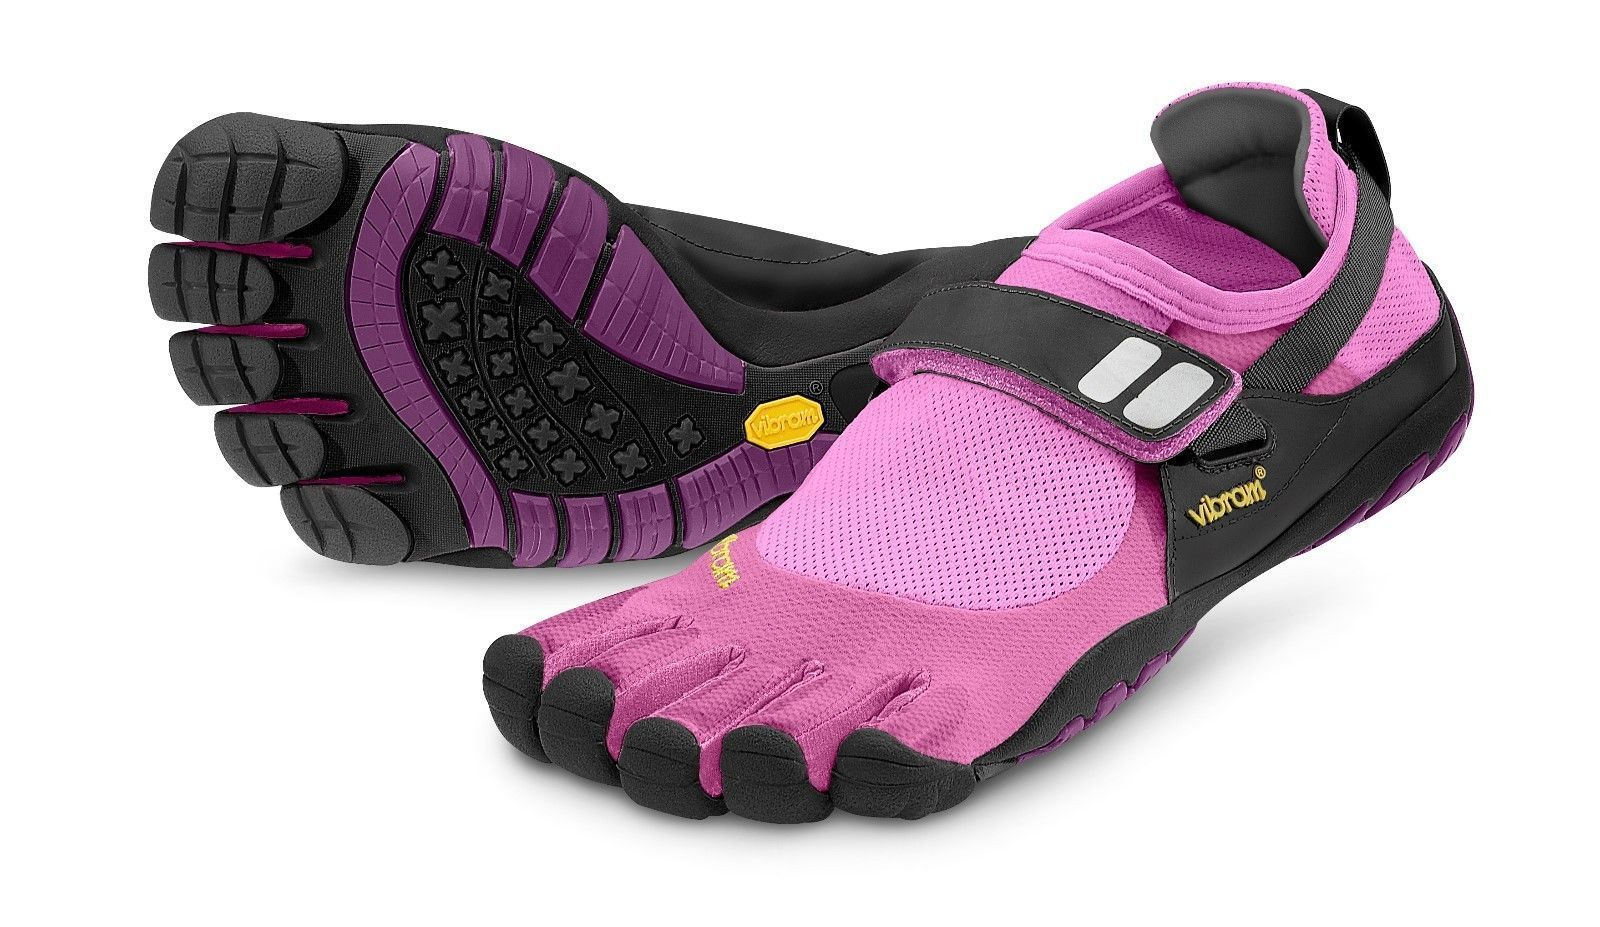 promo code e42e0 0947d Vibram Fivefingers Treksport Womens Trek Five Fingers Running Hiking Shoes  Pink